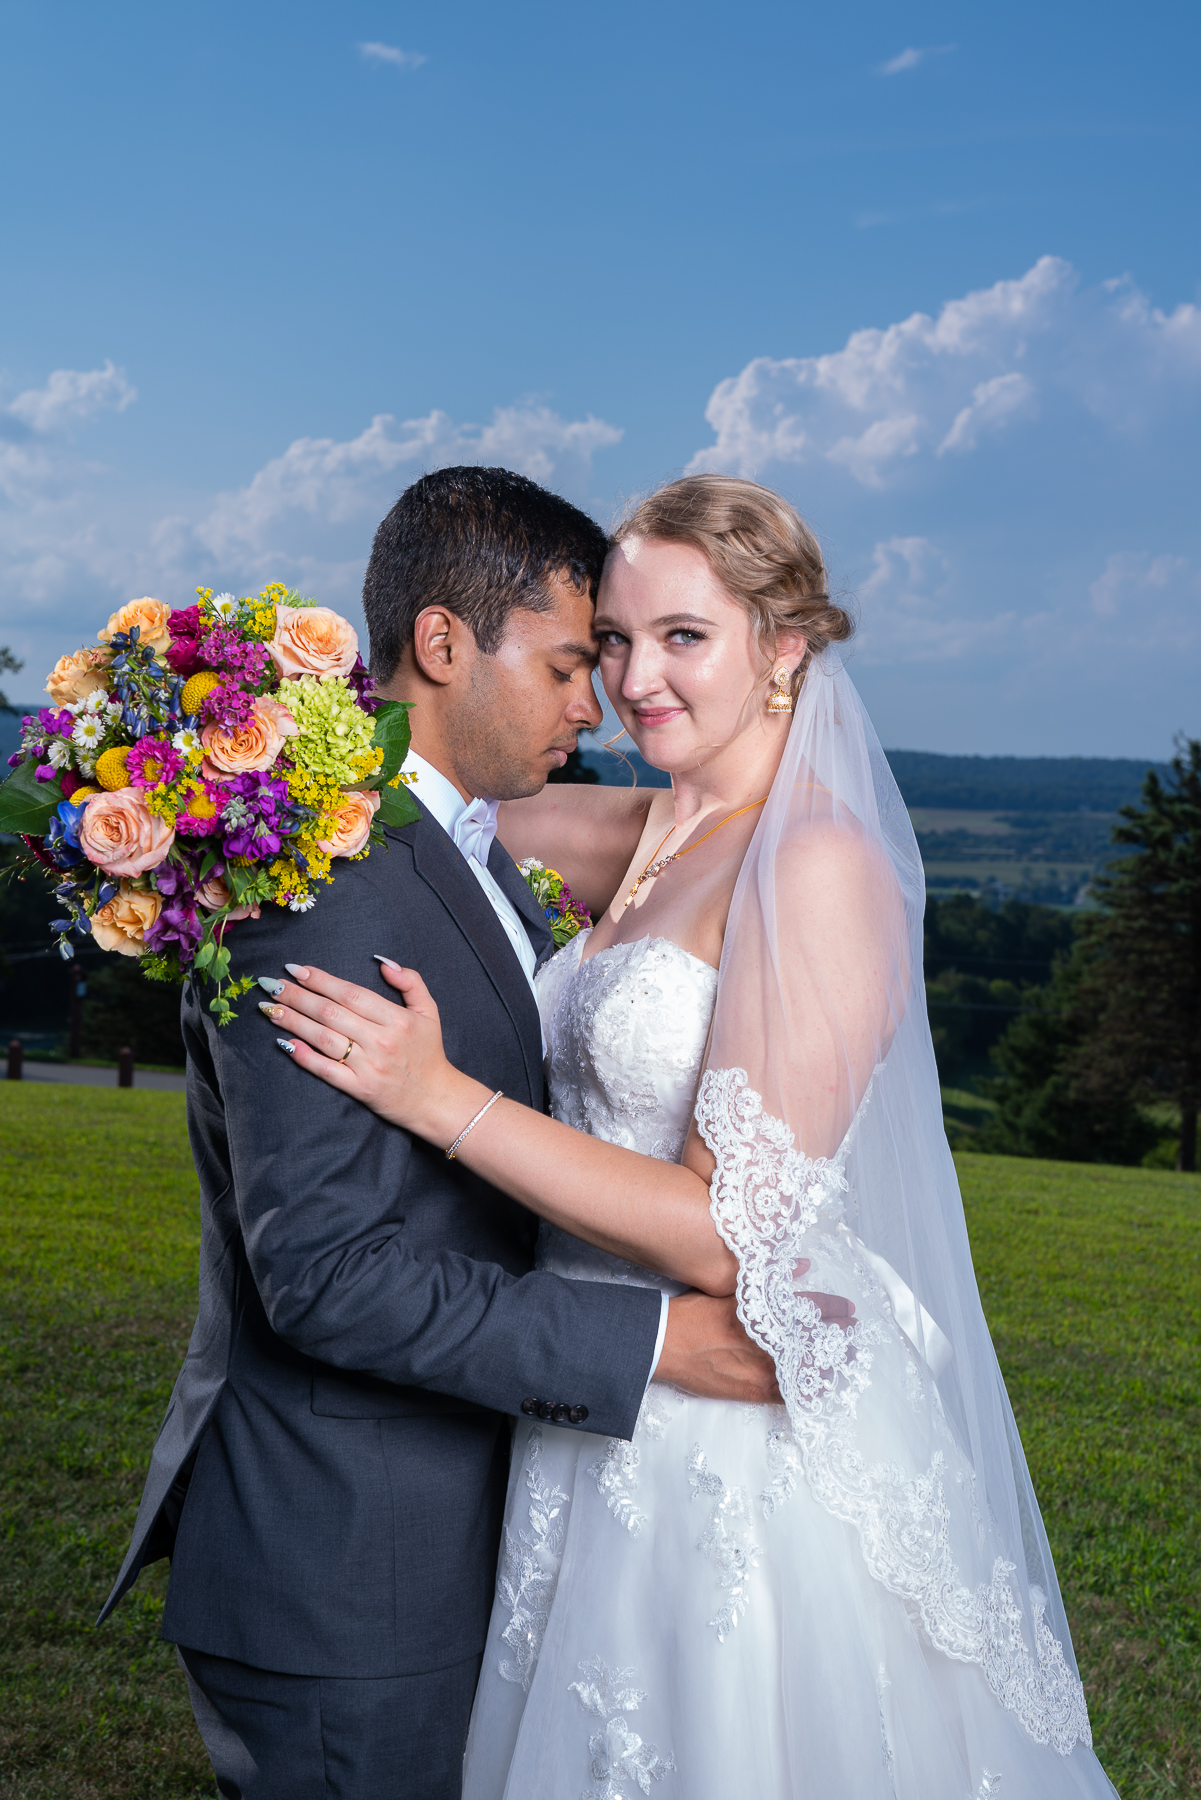 A beautiful bride and stunning views at Sam Lewis State Park in York for their Wedding Photos.